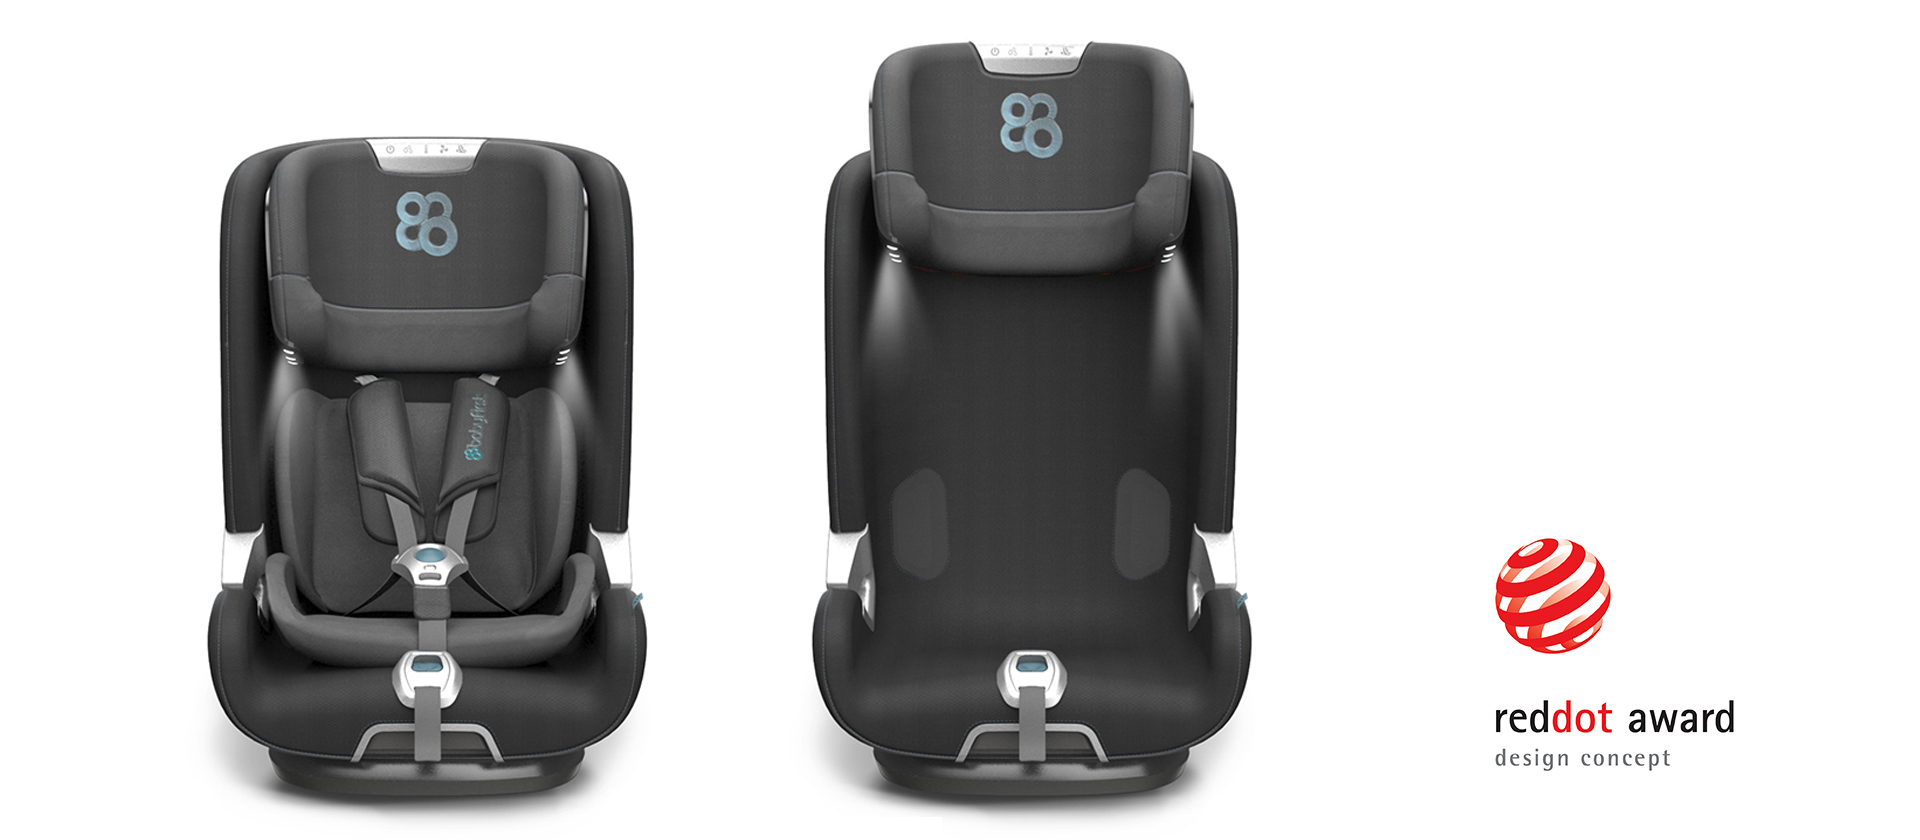 Red dot concept award winner smart baby car seat